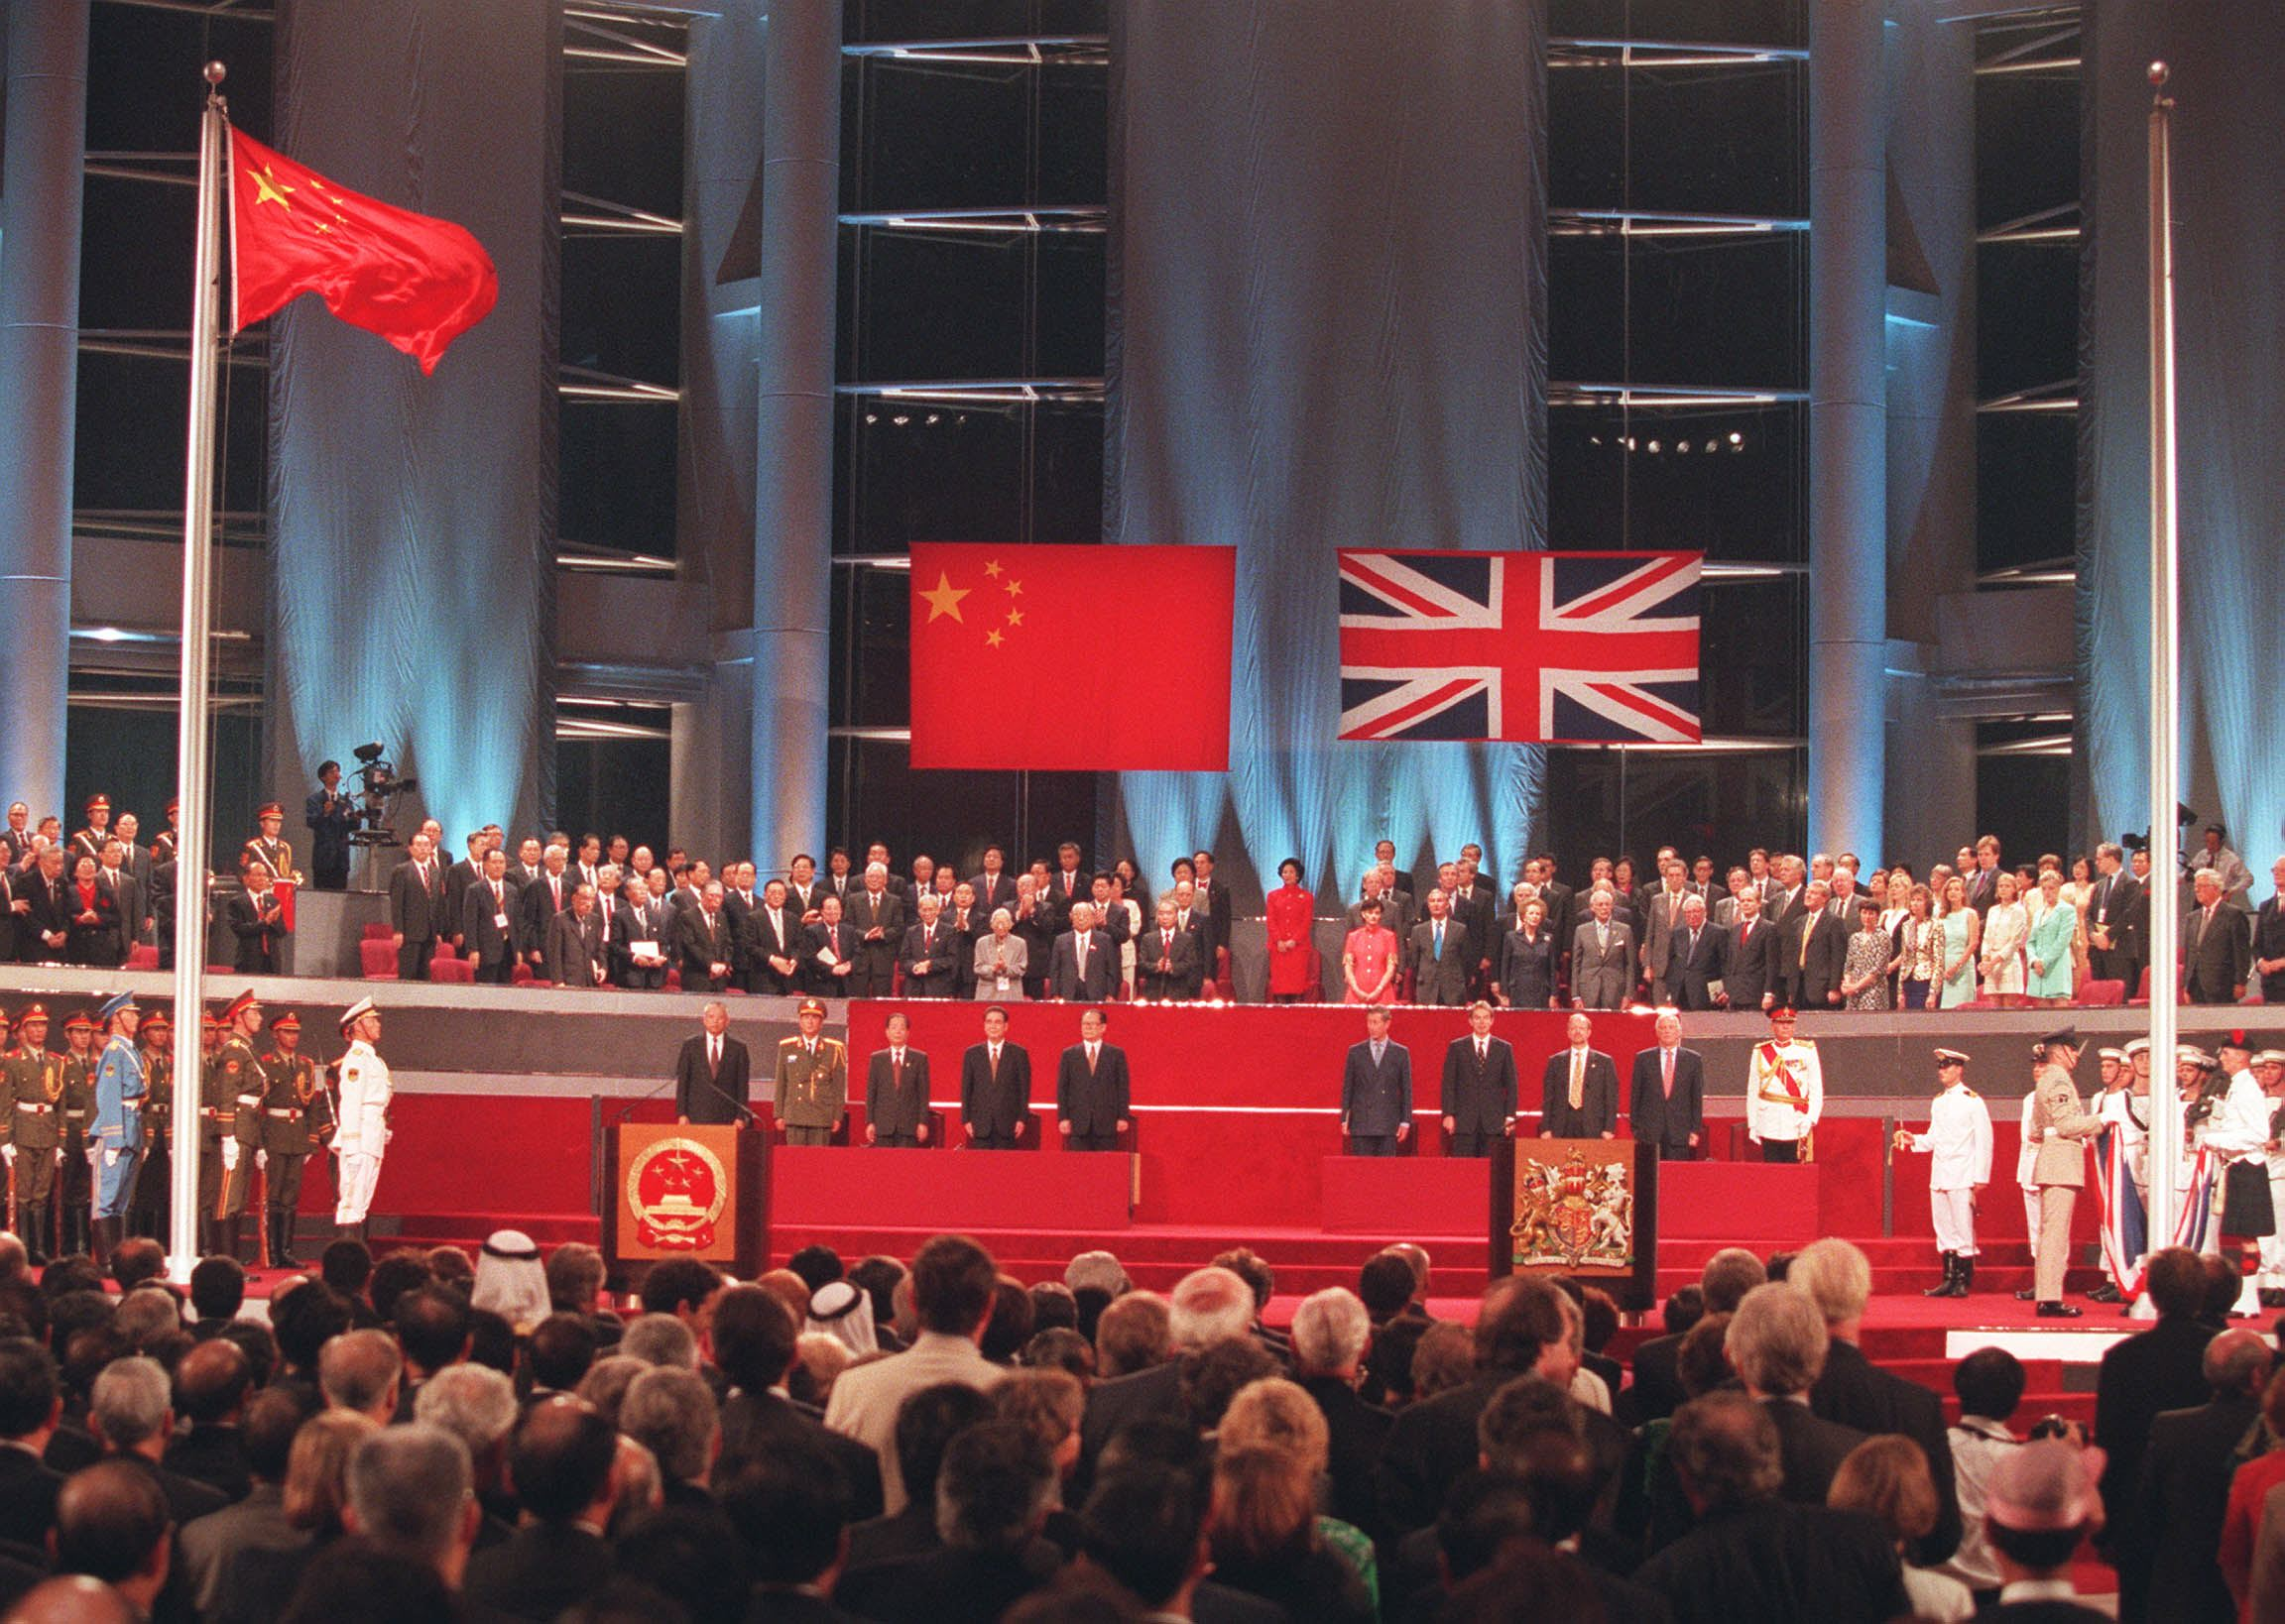 The handover ceremony July 1 showing the Chinese flag flying after the Union Jack was lowered.